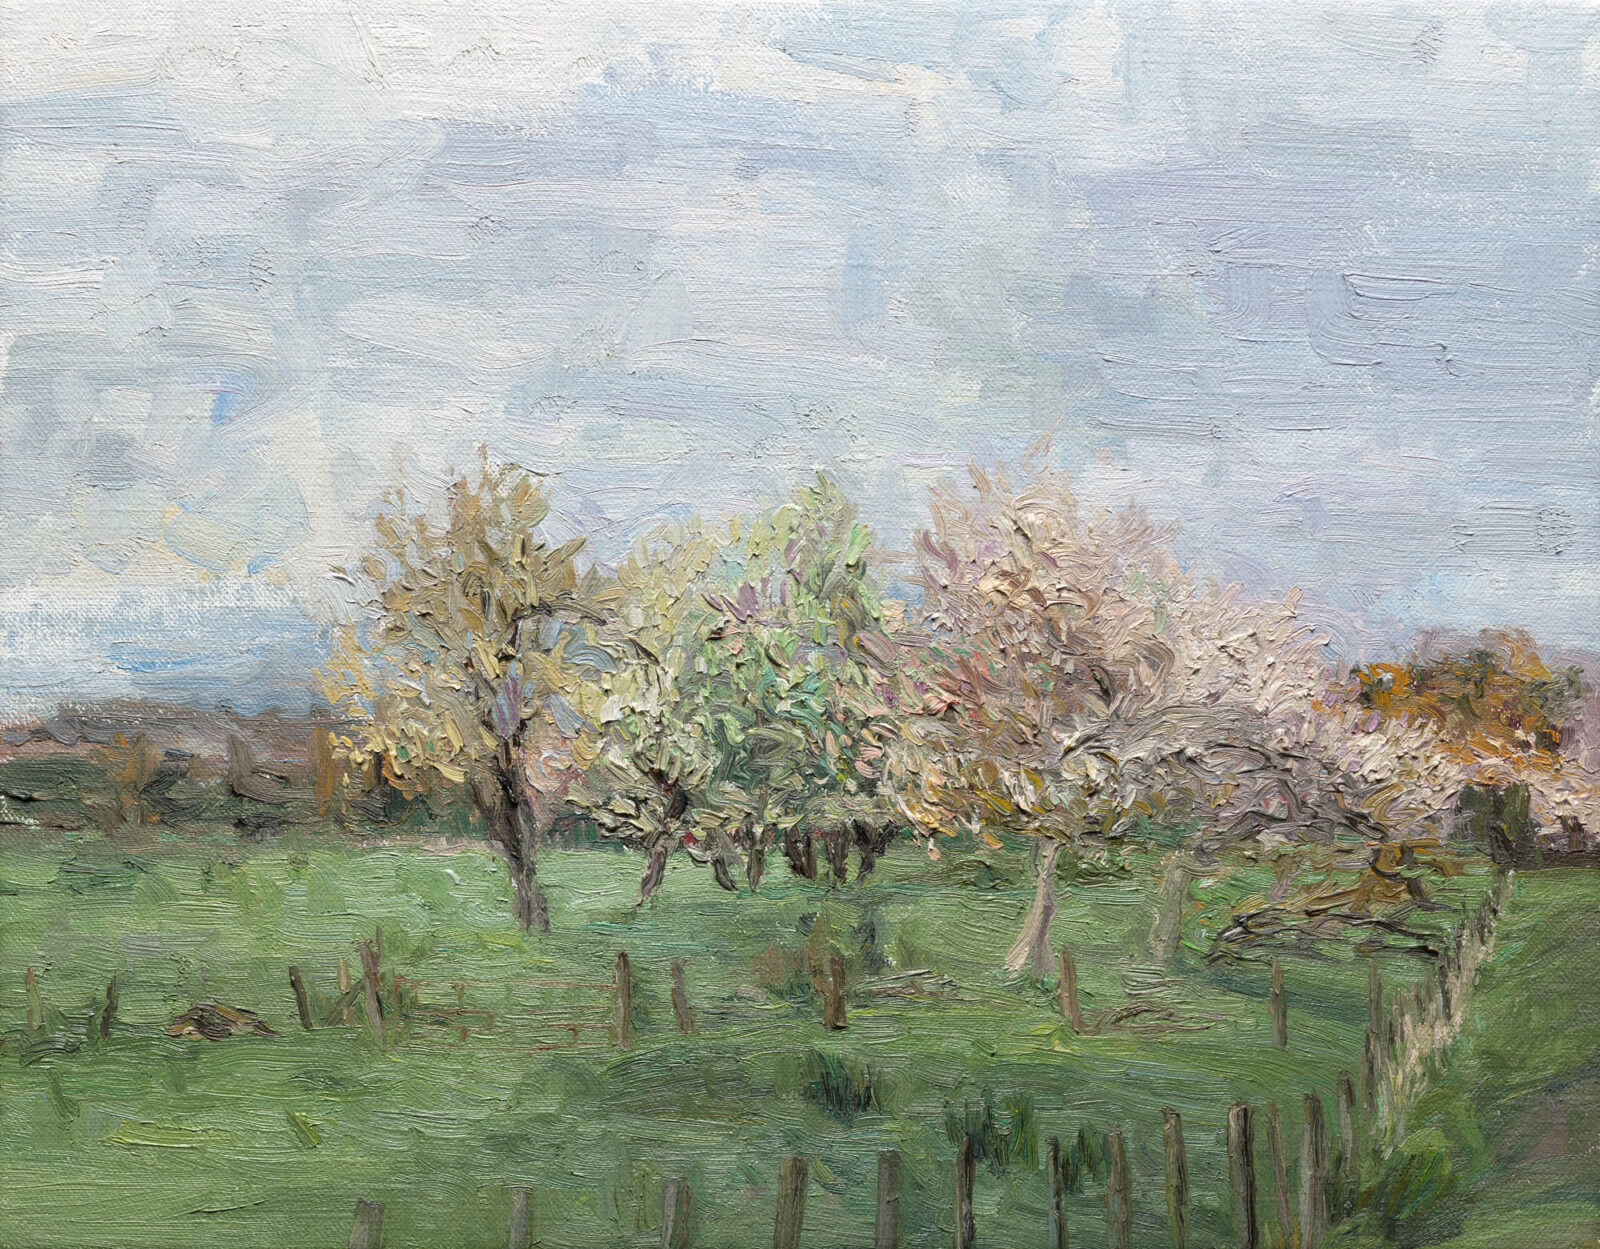 Liza Visagie - Spring Orchard. Oil on Linen 11 x 14 inches